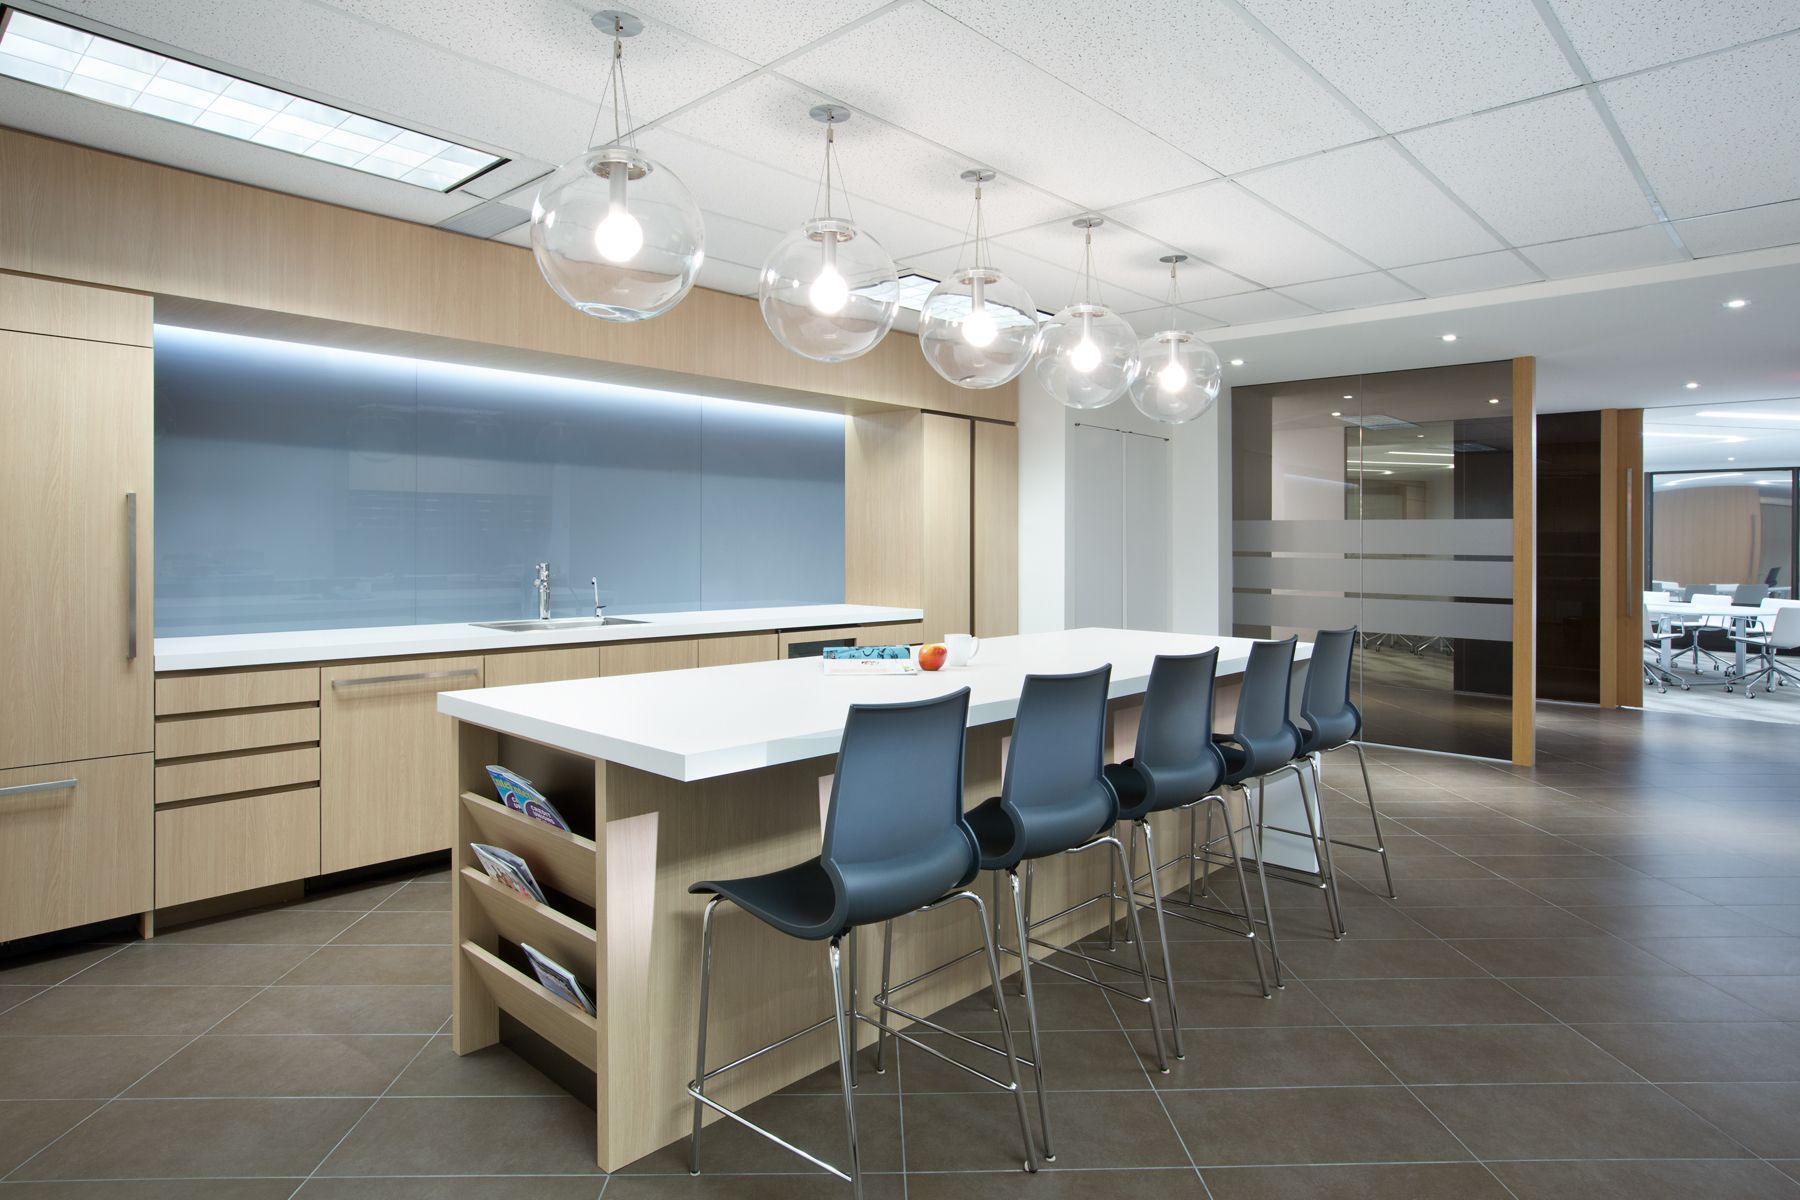 Ssdg interiors inc workplace executive office for Executive office design